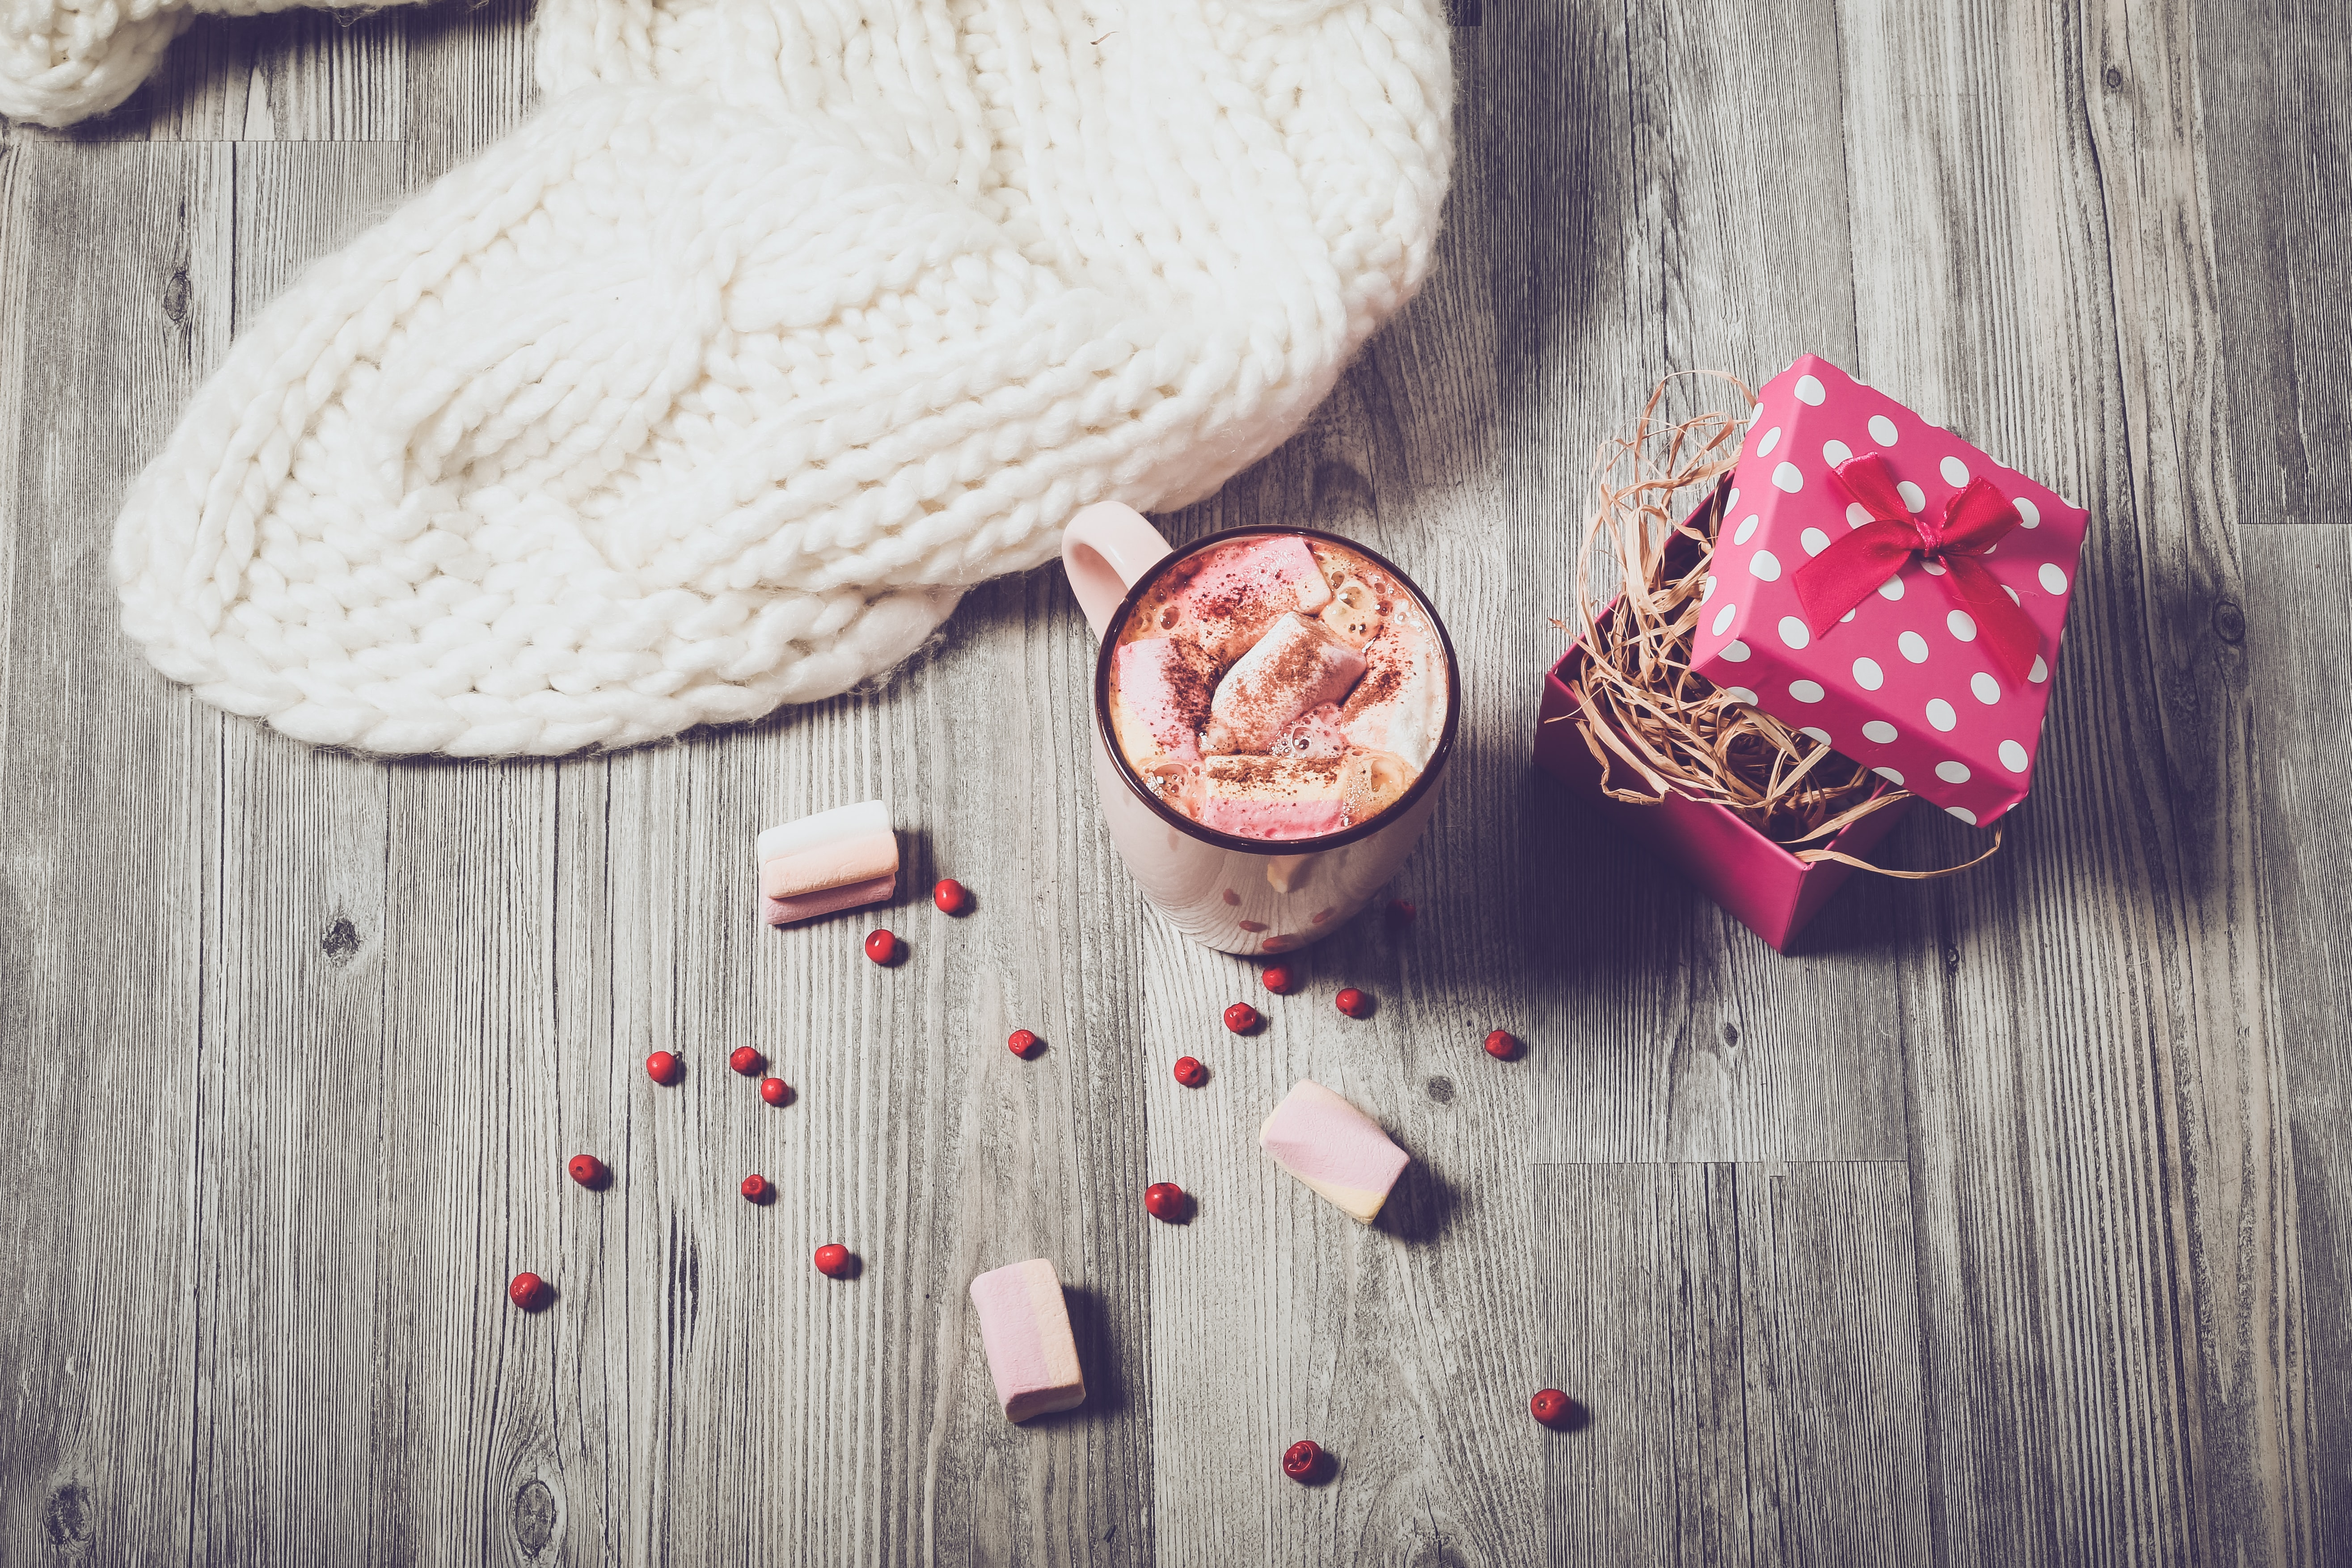 A hot beverage surrounded by berries, a knitted item and a gift wrapped box containing straw.